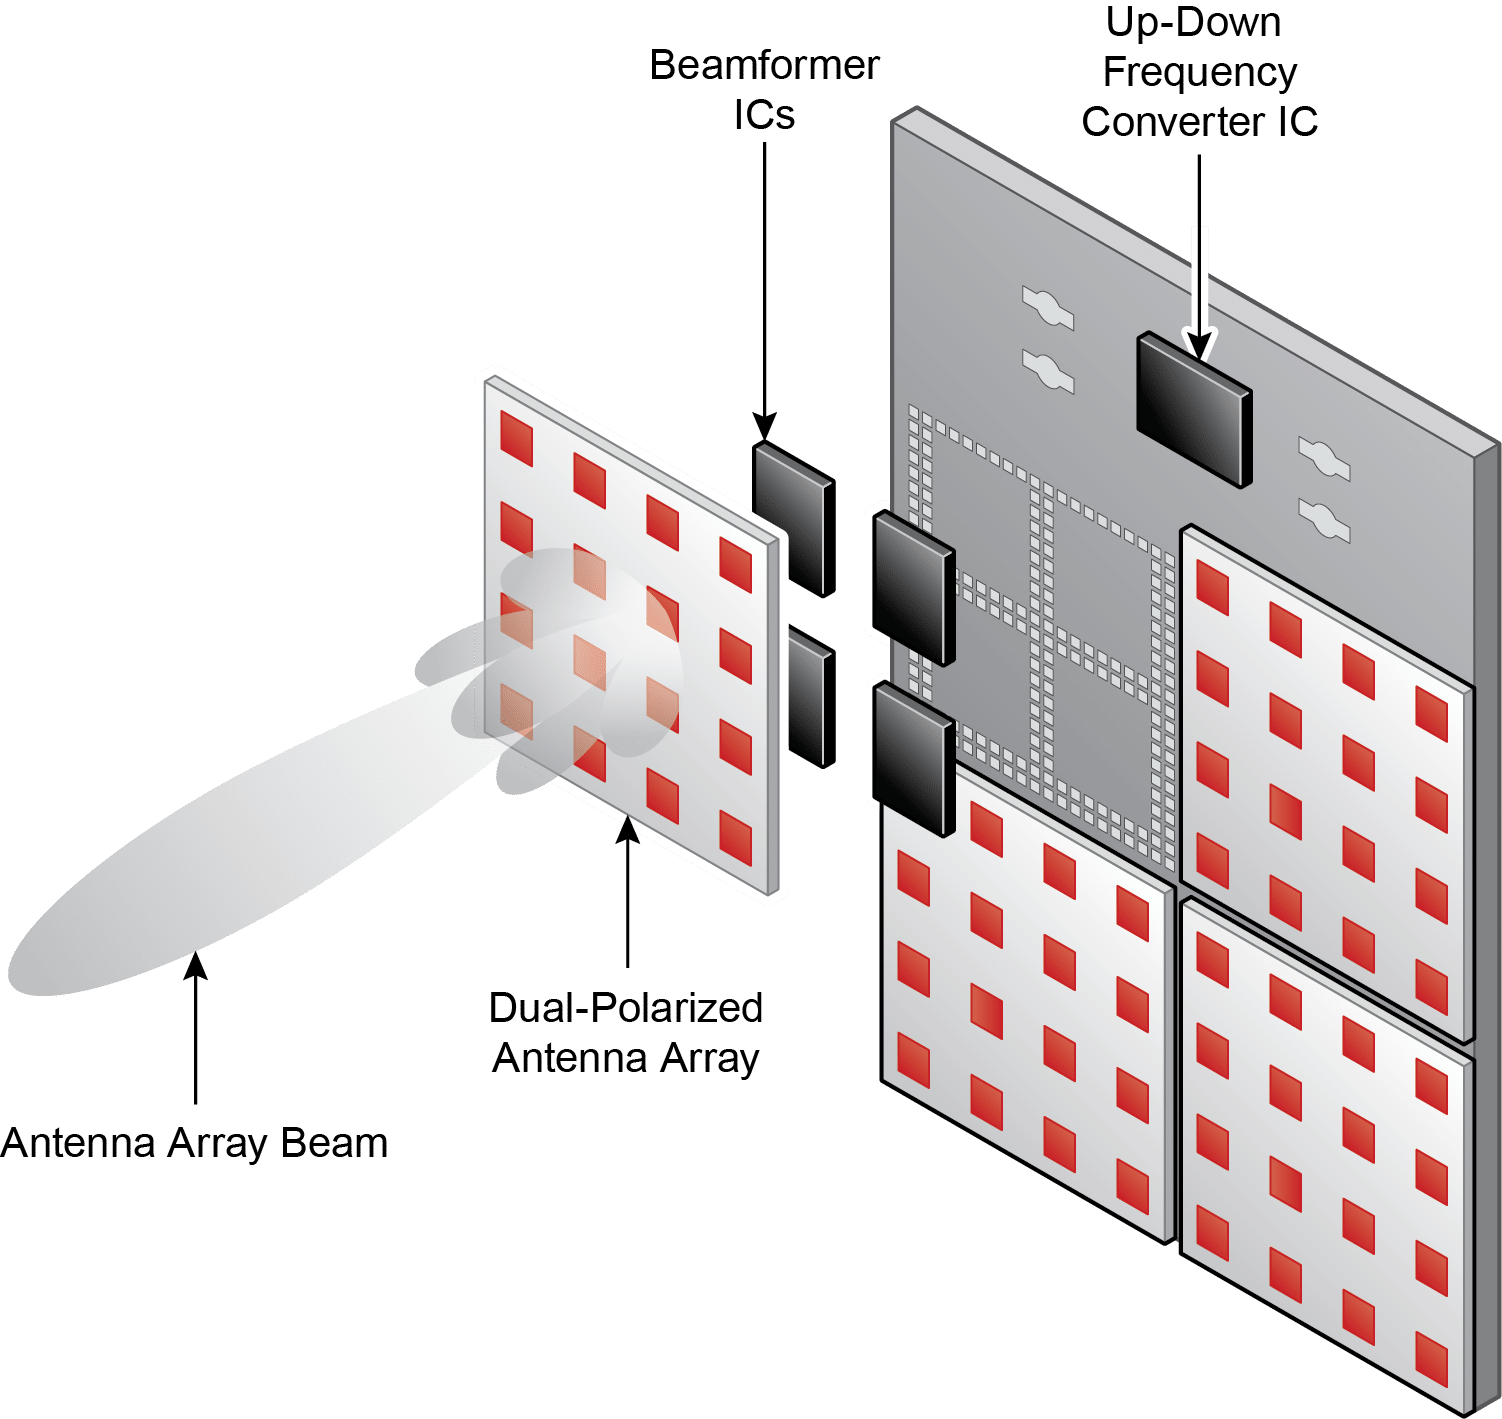 pSemi Technology 5G mmWave Integrated Solutions